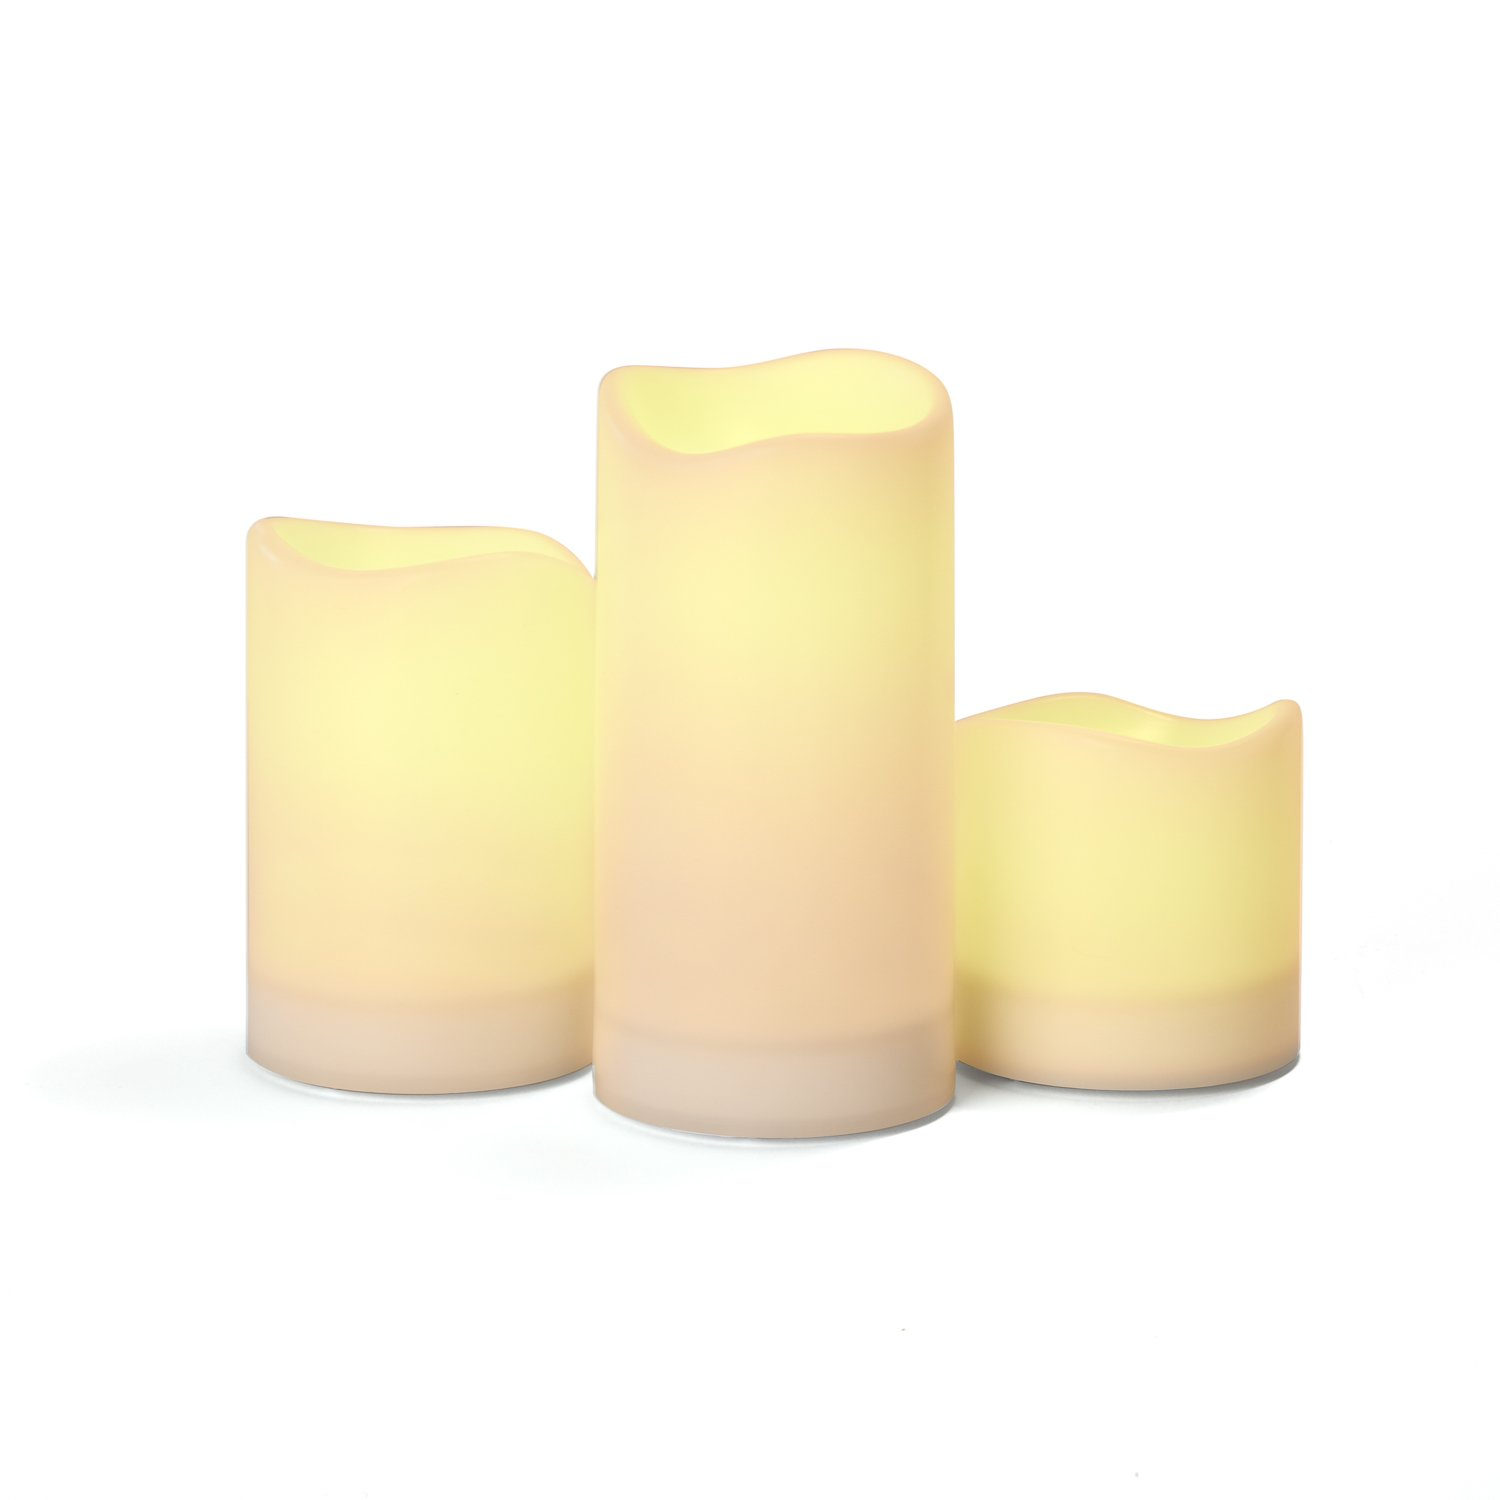 Ivory Solar Flameless Pillar Candles, Rechargeable, Warm White LEDs, Outdoor Use, Batteries Included - Set of 3 by LampLust